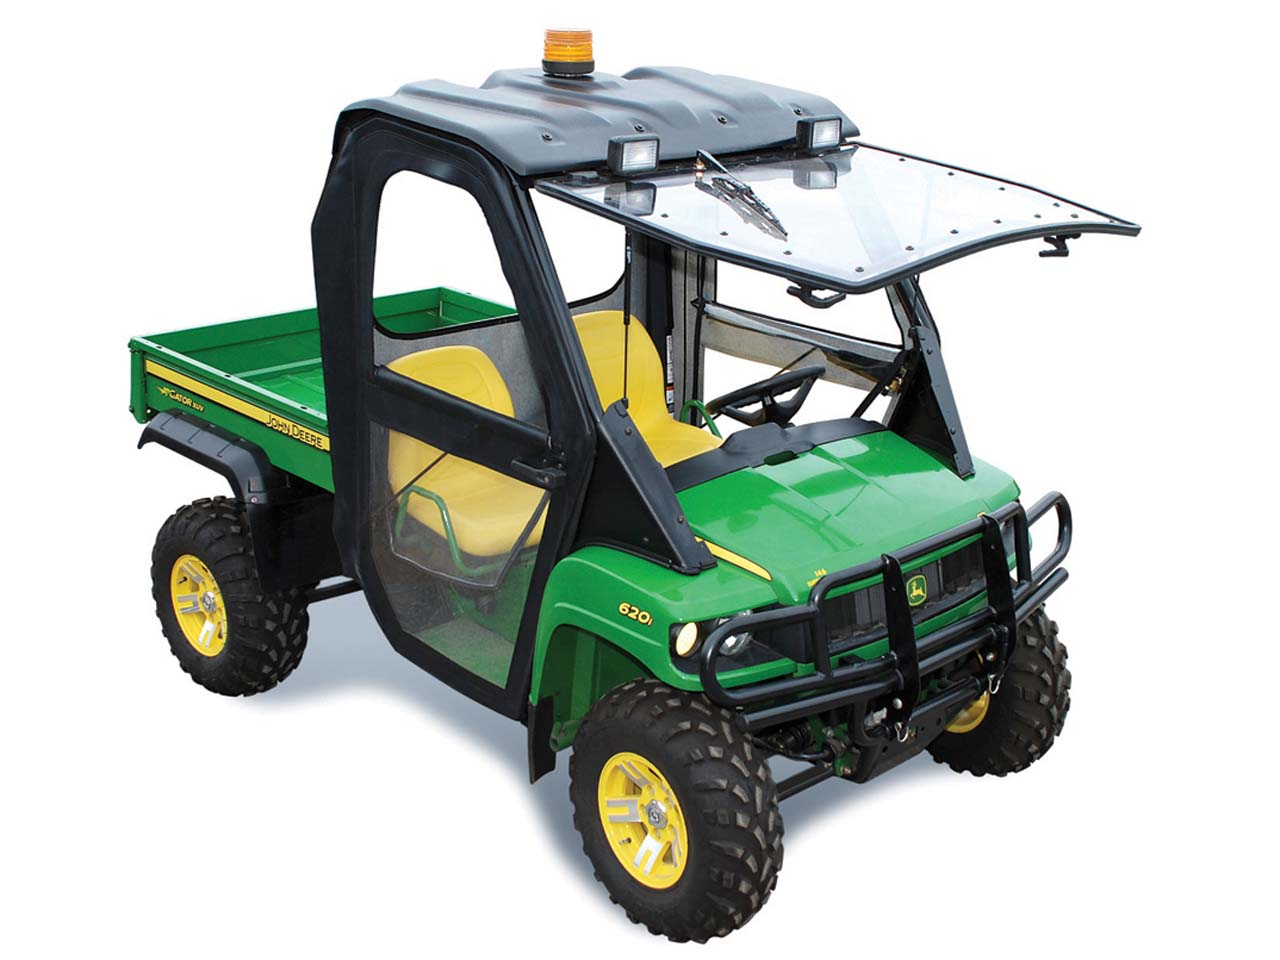 Curtis Introduces New Soft Sided Cab For John Deere Gator